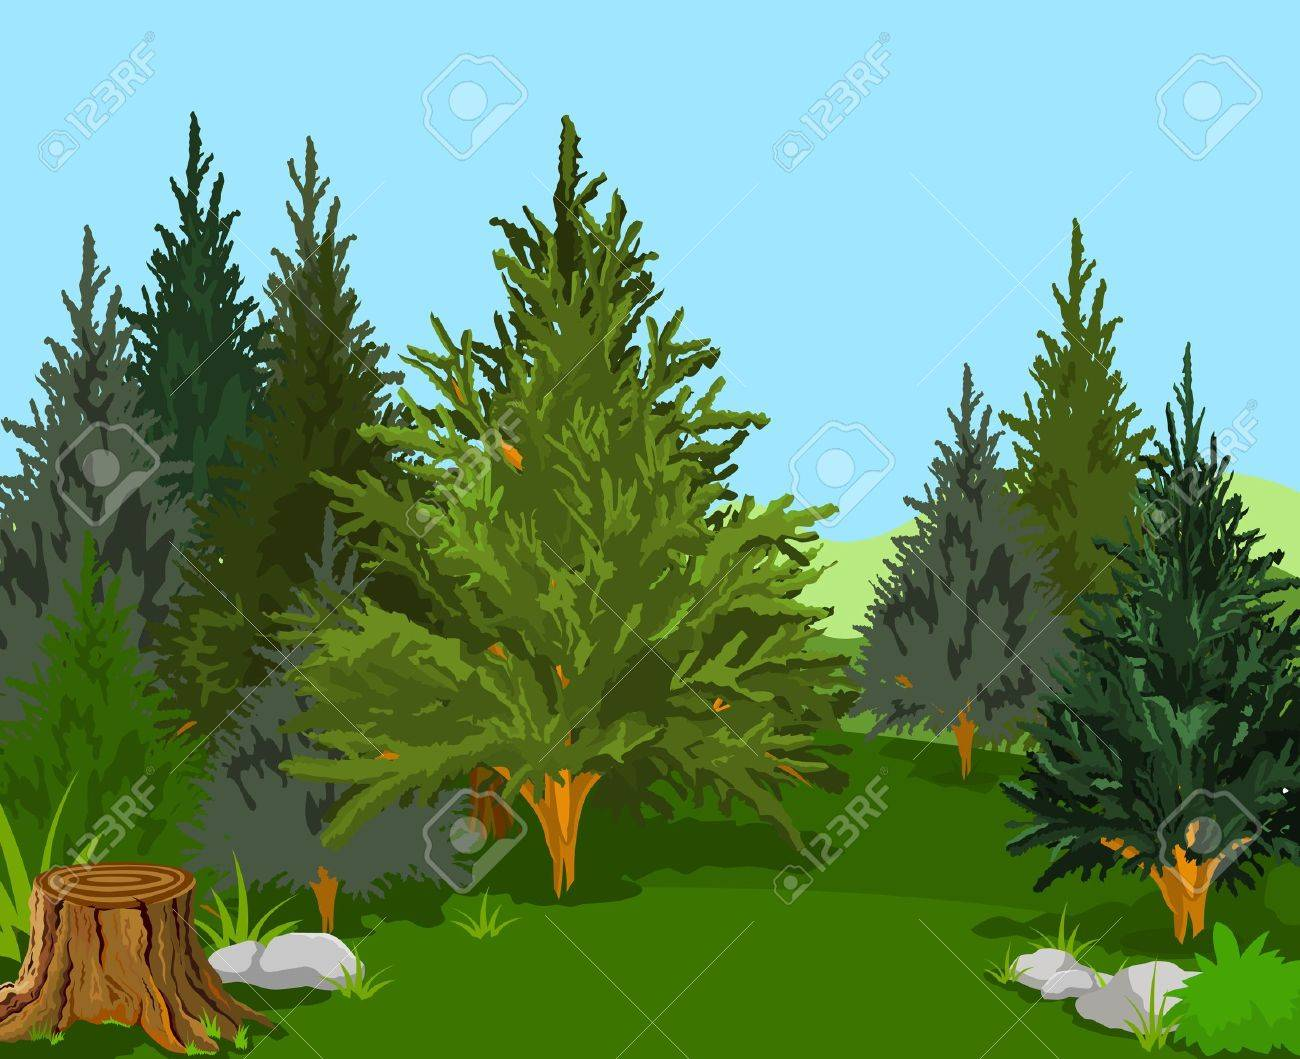 A Green  Forest Landscape with Pine Trees Stock Vector - 13545879